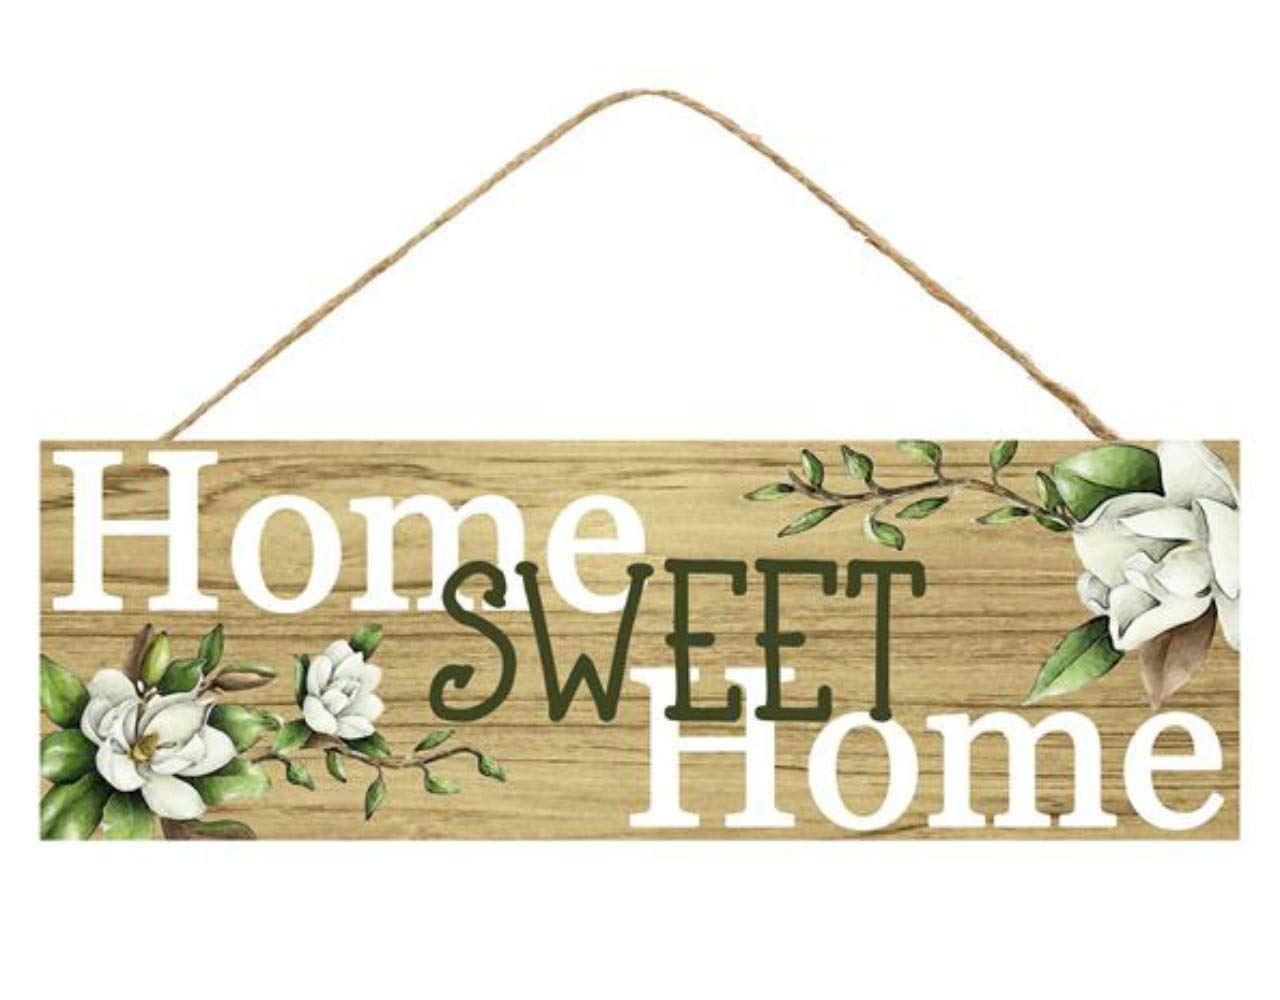 Craig Bachman Home Sweet Home Wooden Sign 12.5 Inches x 6 Inches